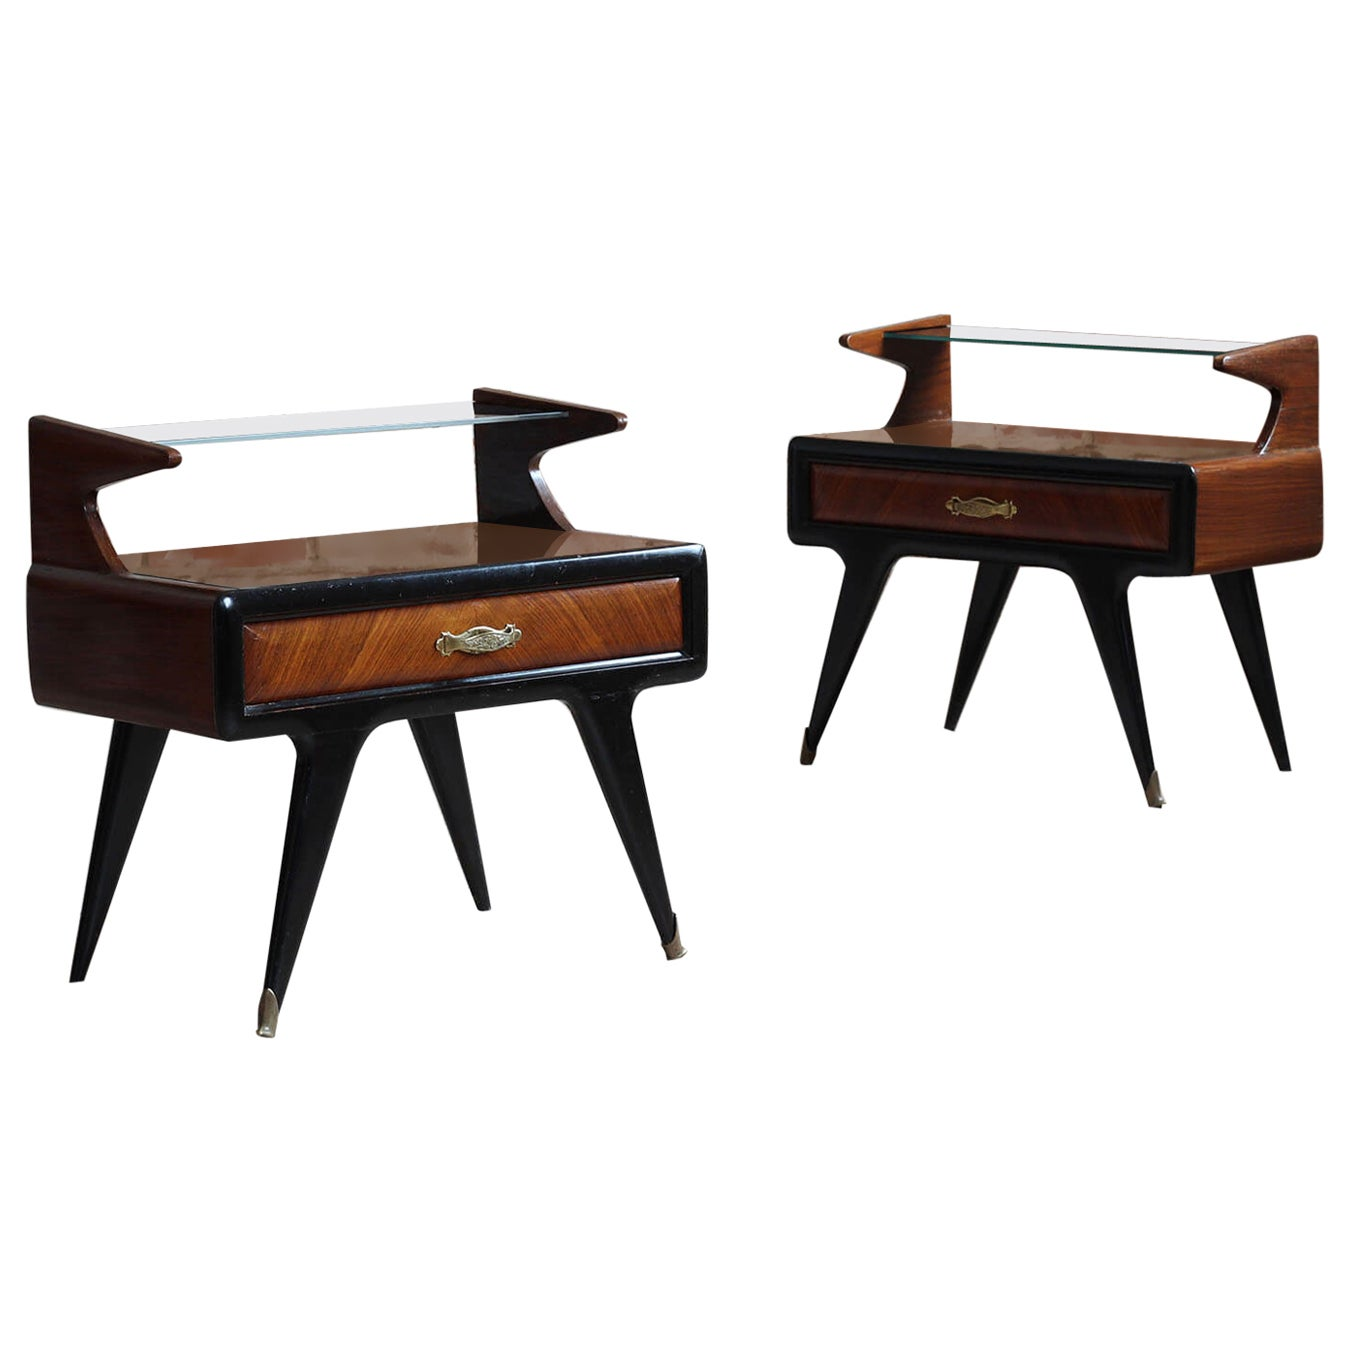 Pair of Italian Nightstands, Paolo Buffa Style, 1950s